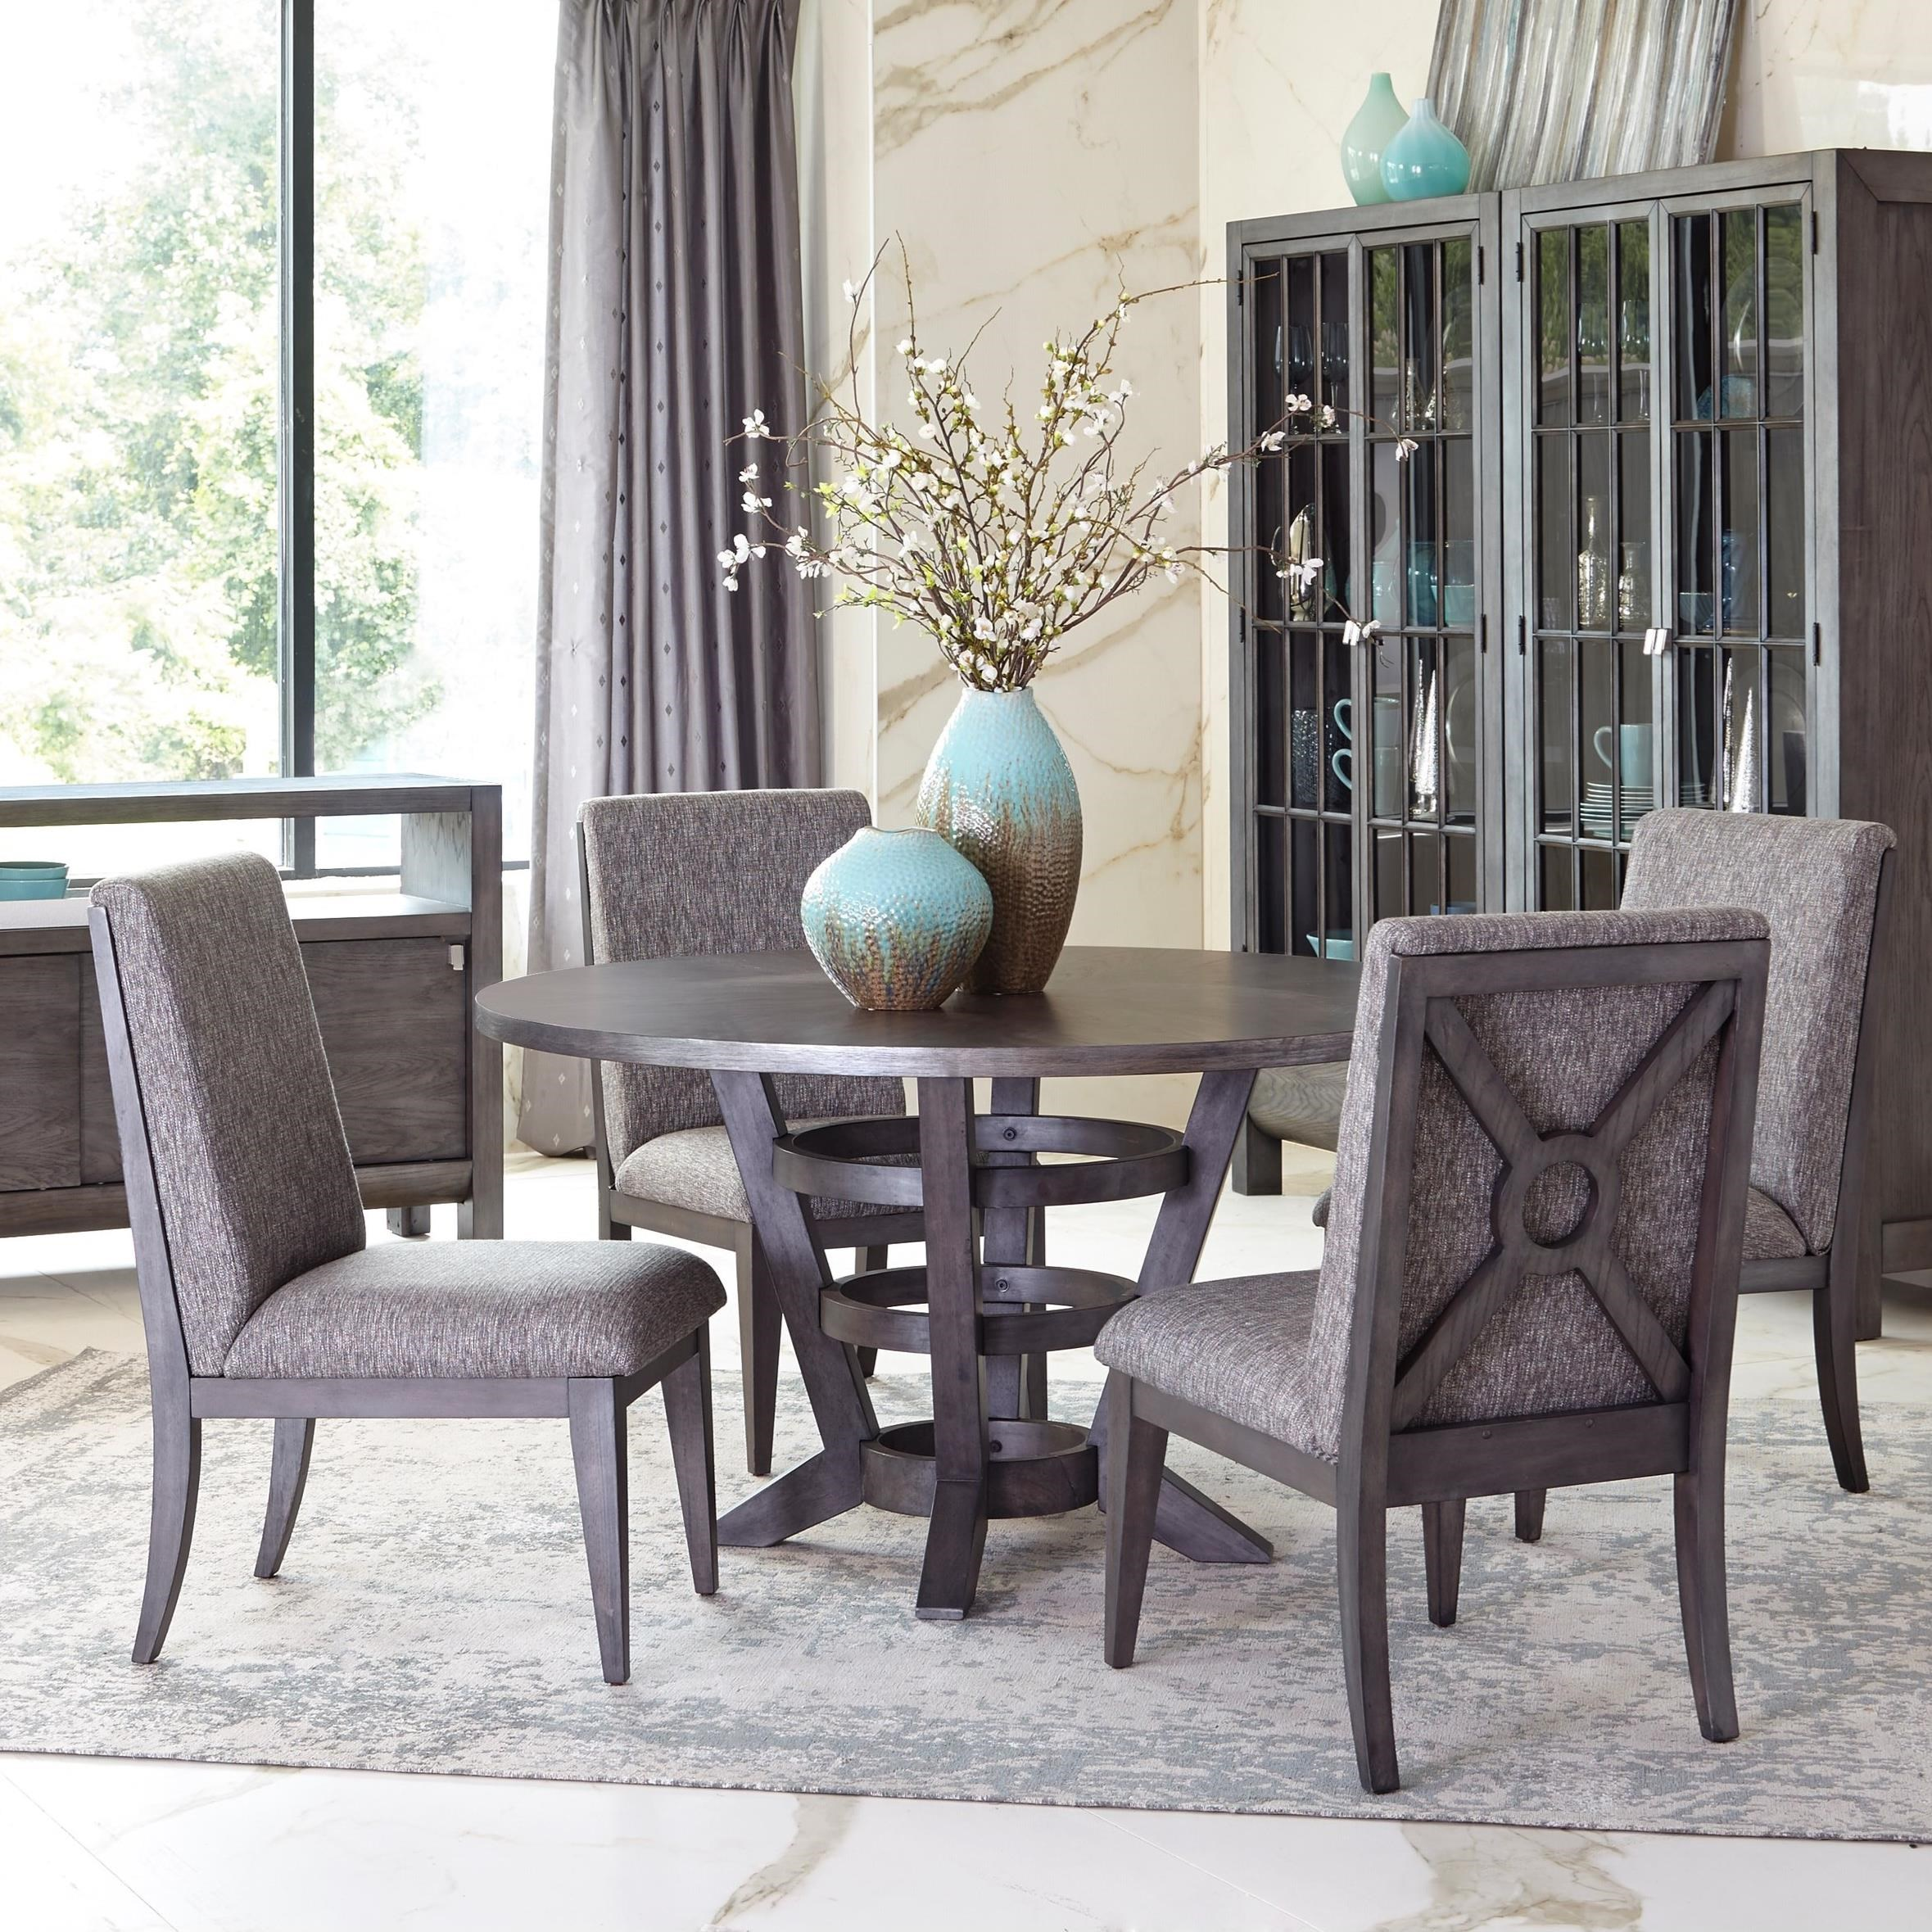 Trisha yearwood home collection by klaussner music city for House music set